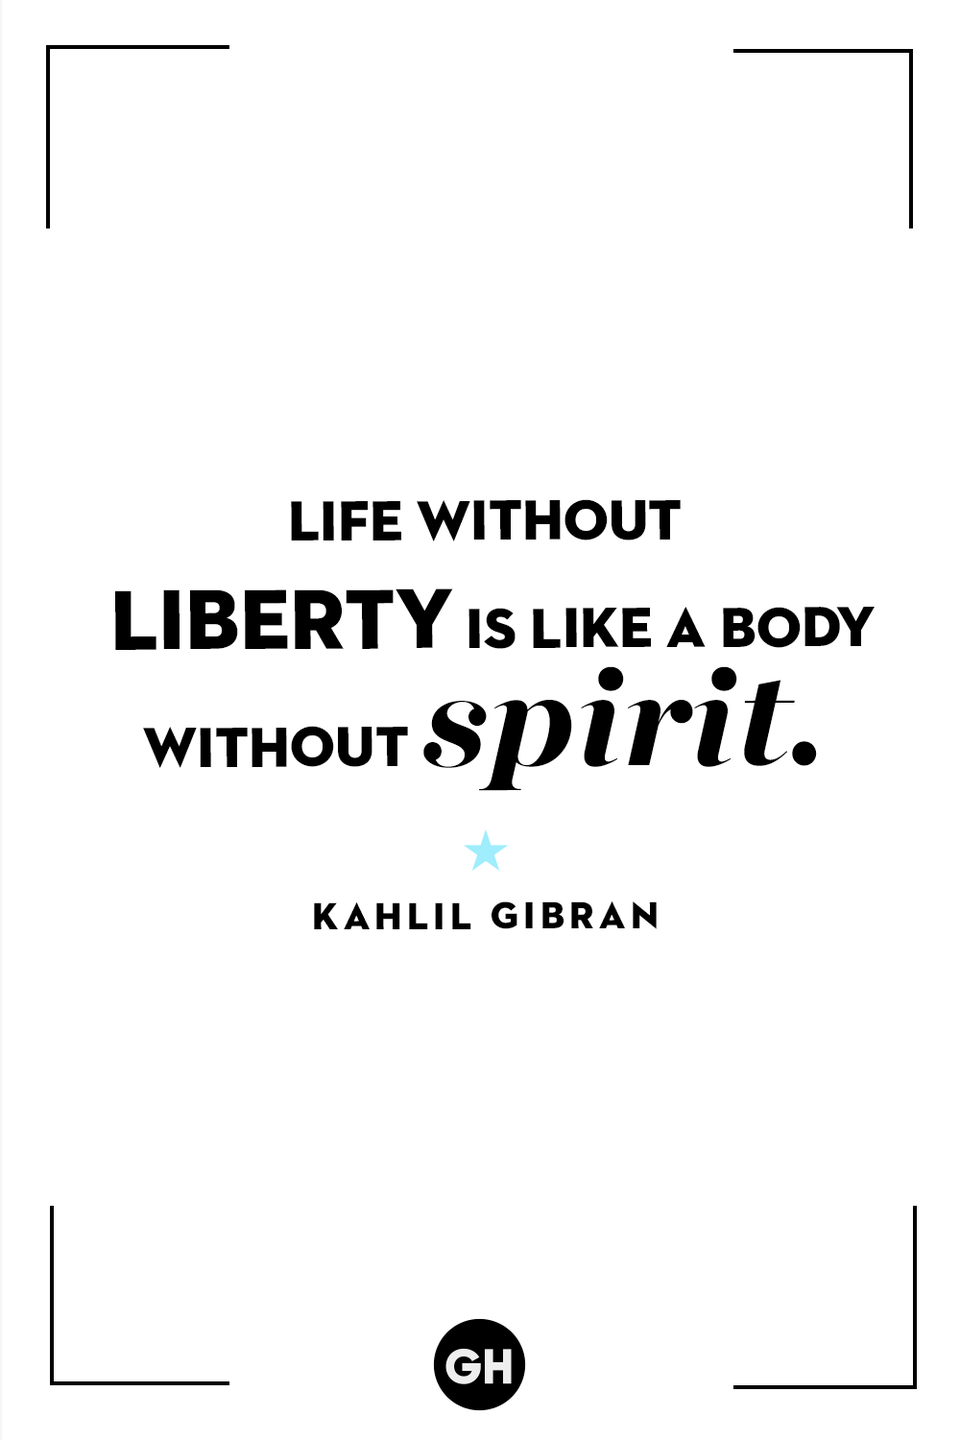 <p>Life without liberty is like a body without spirit.</p>